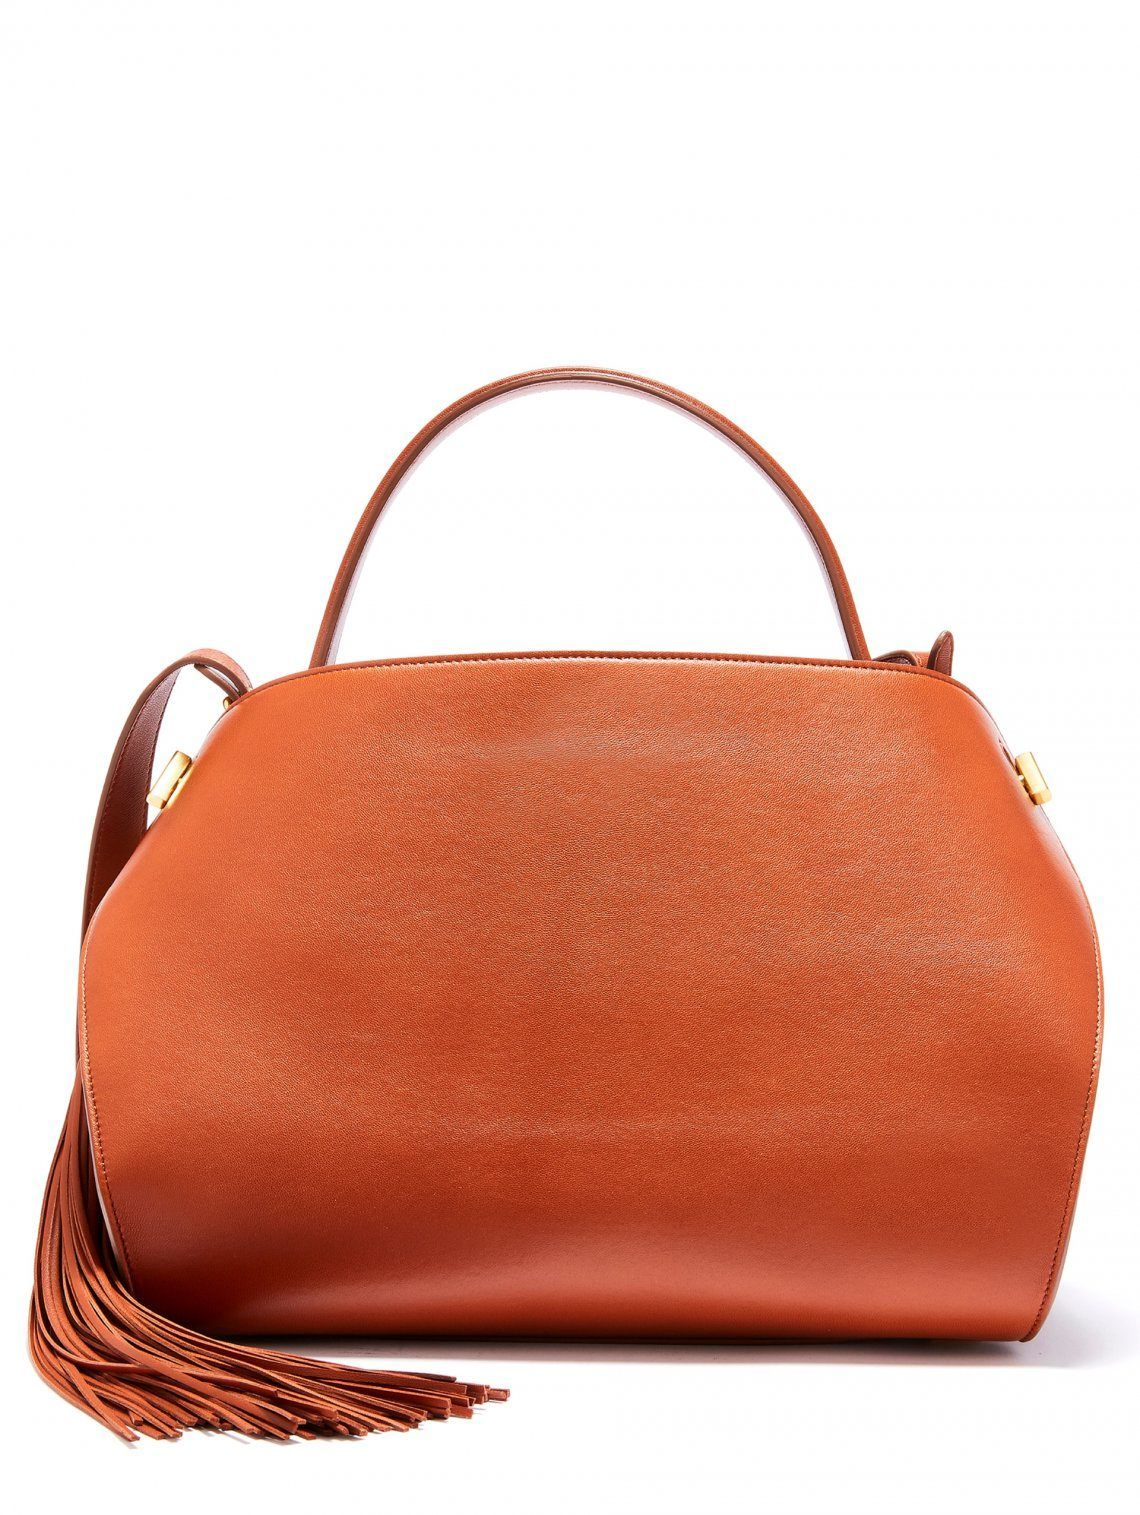 7dcea478181 Oscar de la Renta Cognac Leather Nolo Bag in 2019 | Bag B*tch | Bags ...